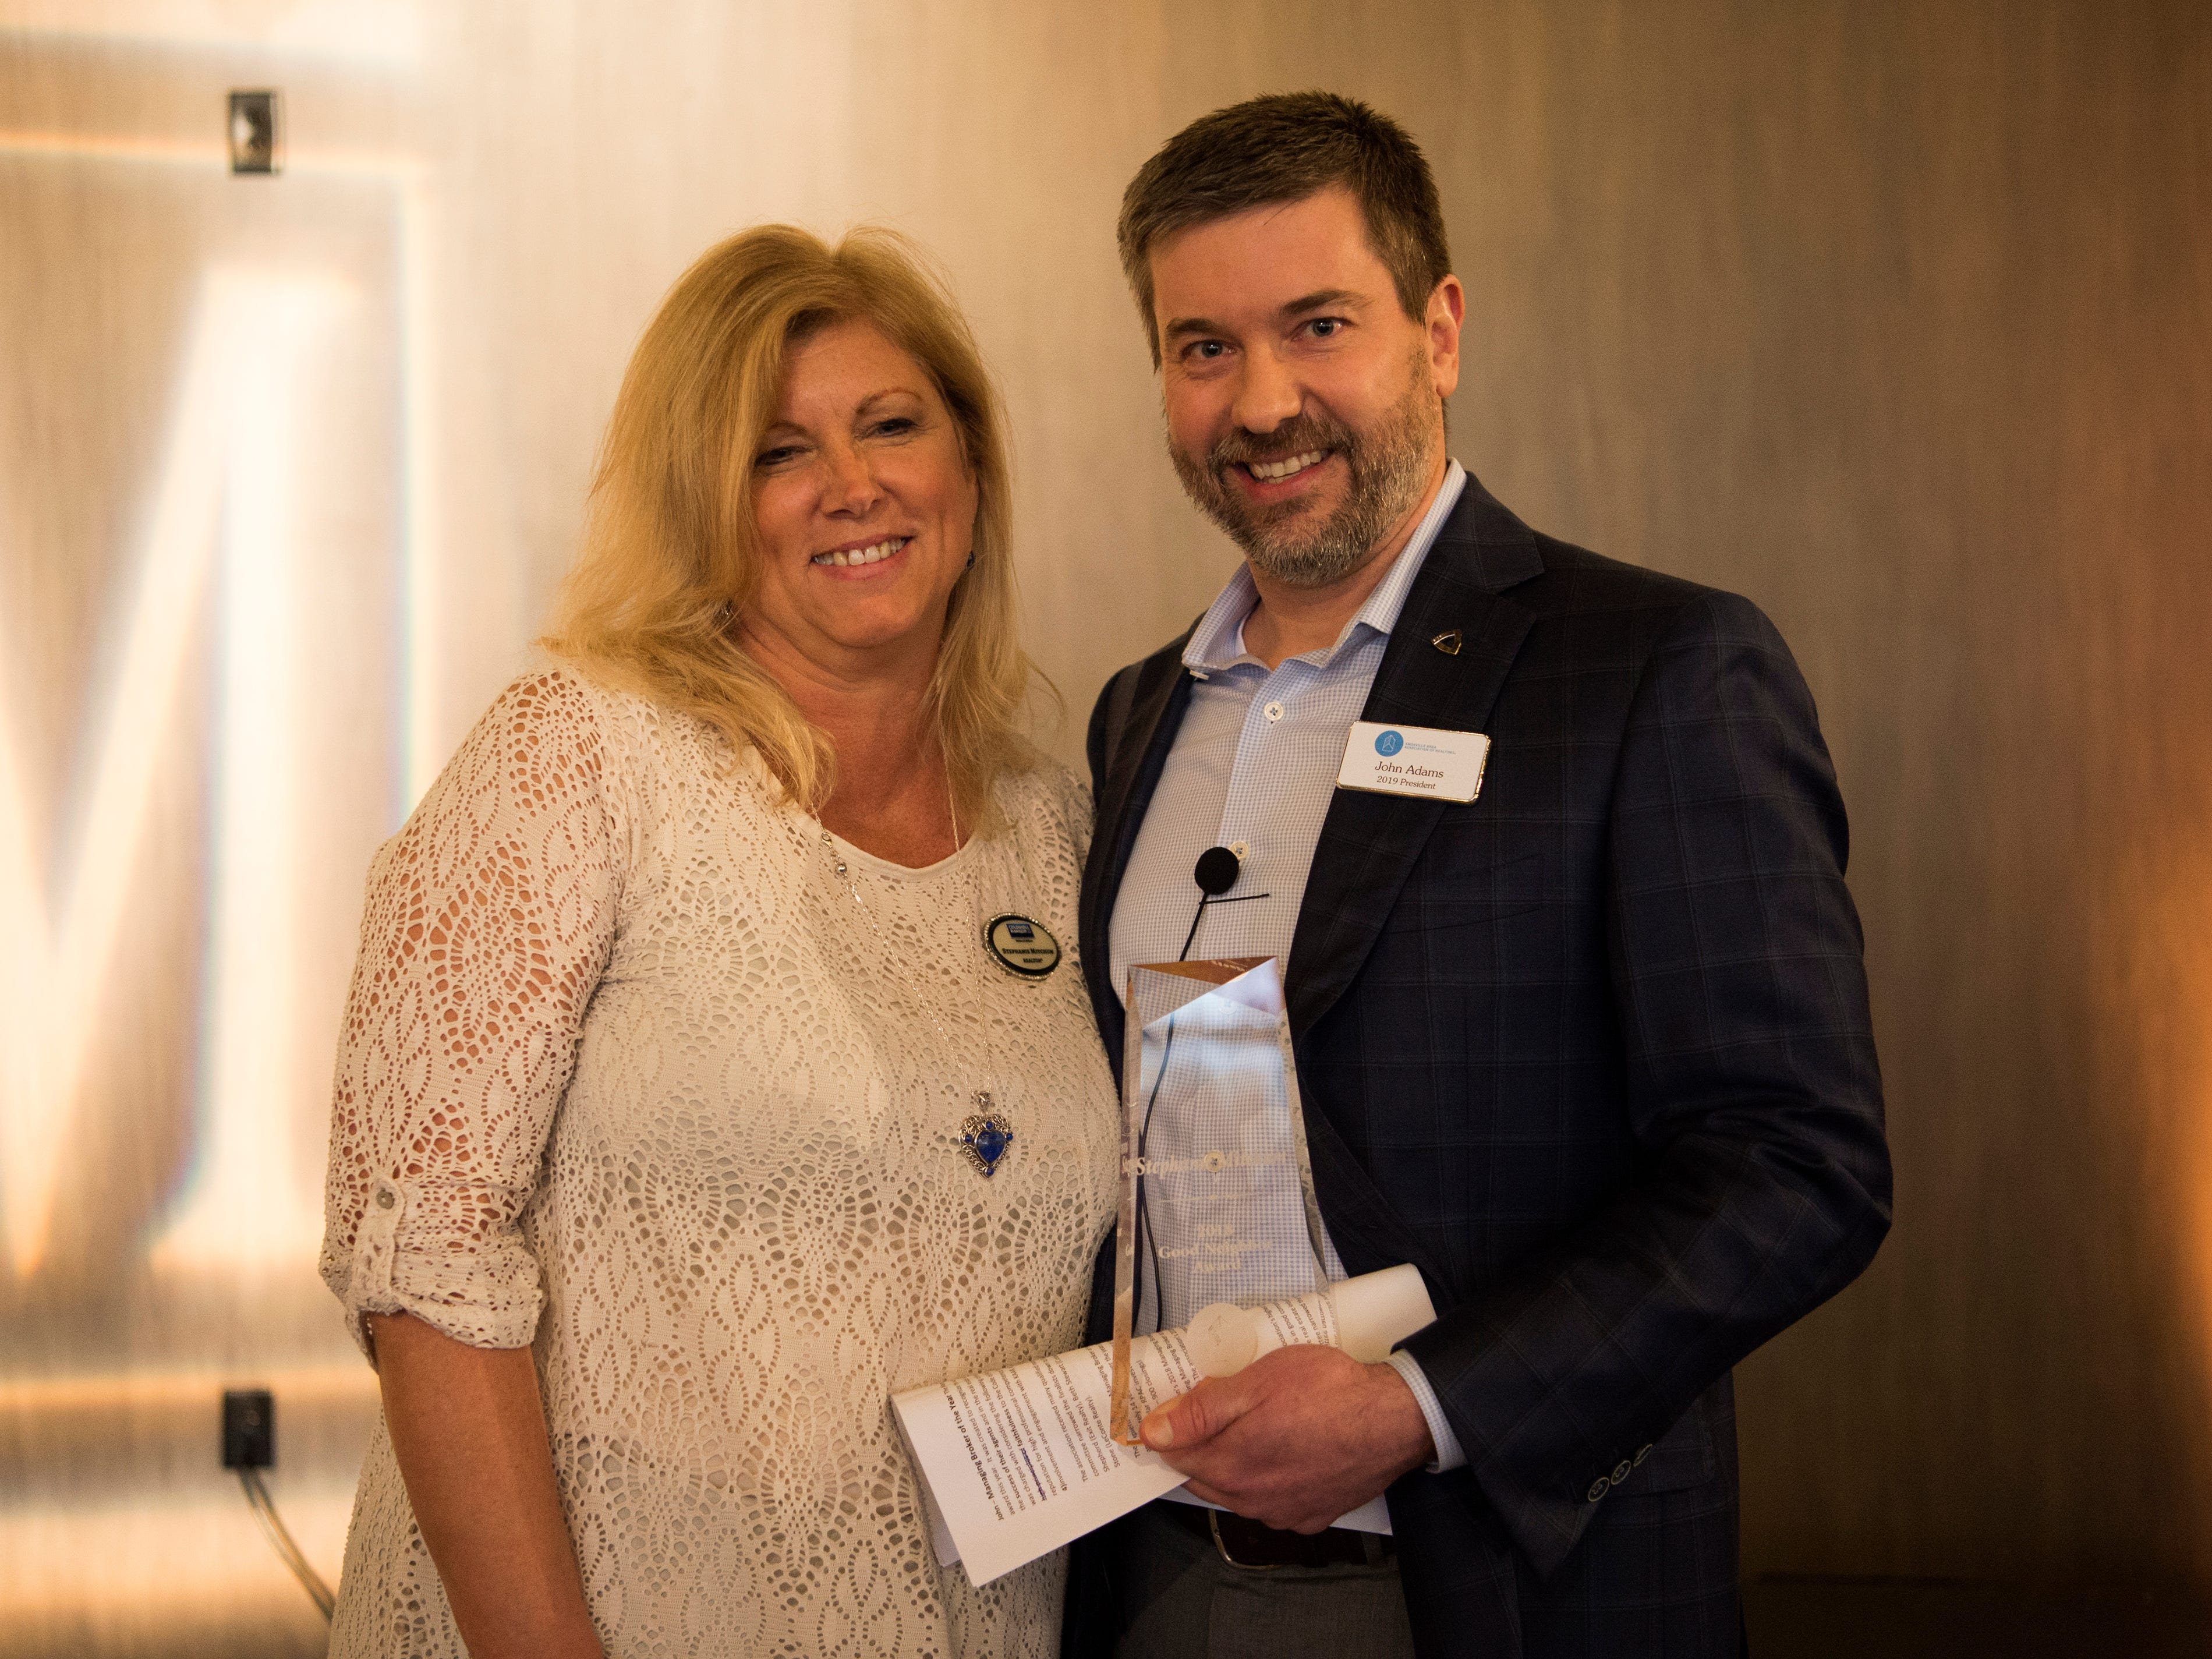 Stephanie Mitchum, left, is awarded Good Neighbor at the Commercial and Residential Real Estate Awards held at The Press Room in Knoxville on Tuesday, February 12, 2019.